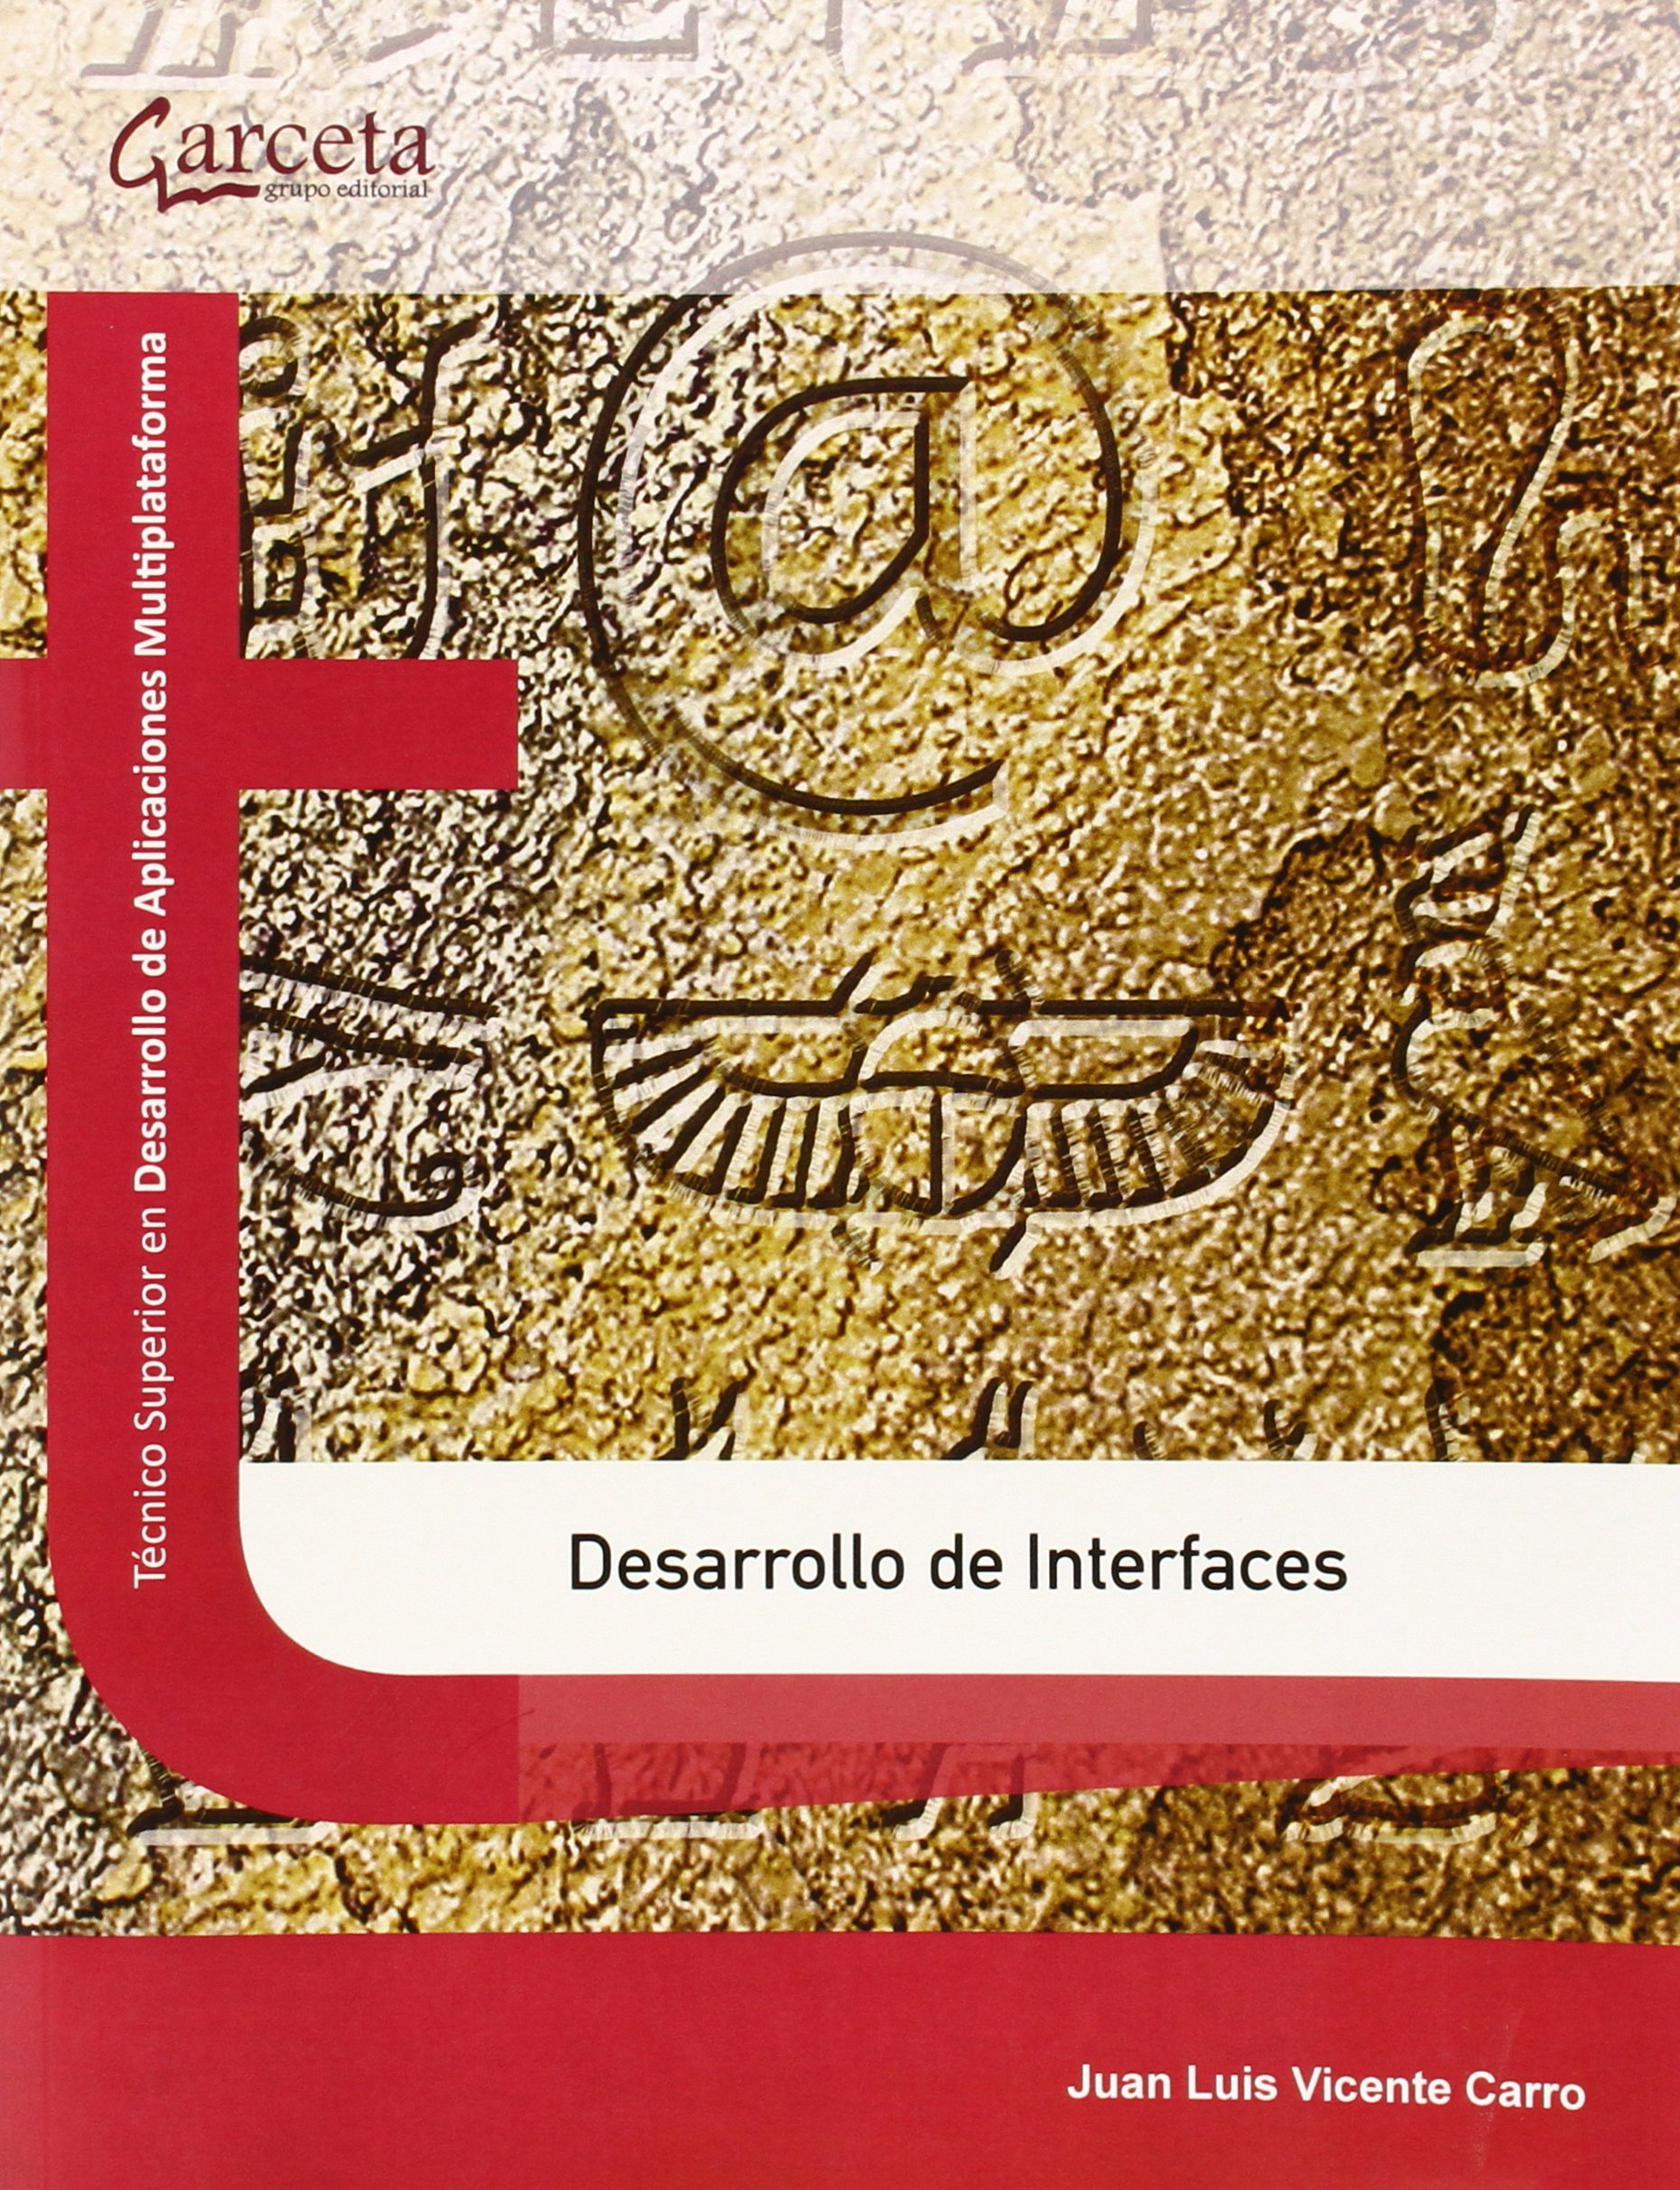 Desarrollo de Interfaces (Texto (garceta)): Amazon.es: Juan Luis Vicente Carro: Libros